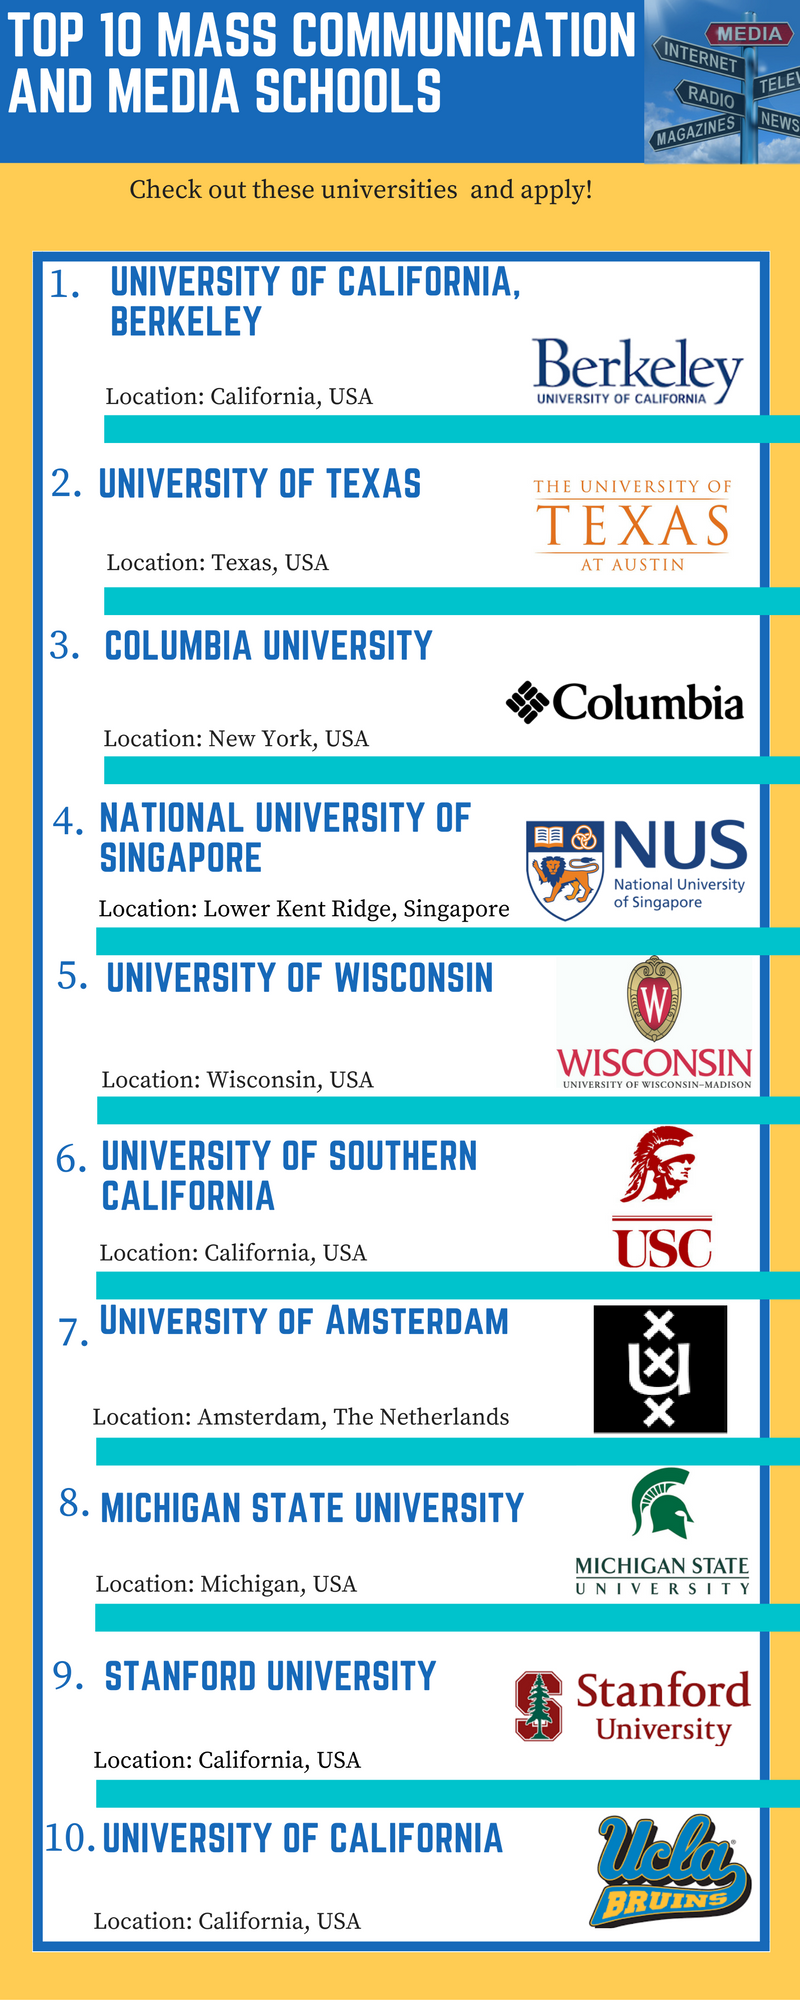 Top 10 mass communication and media schools